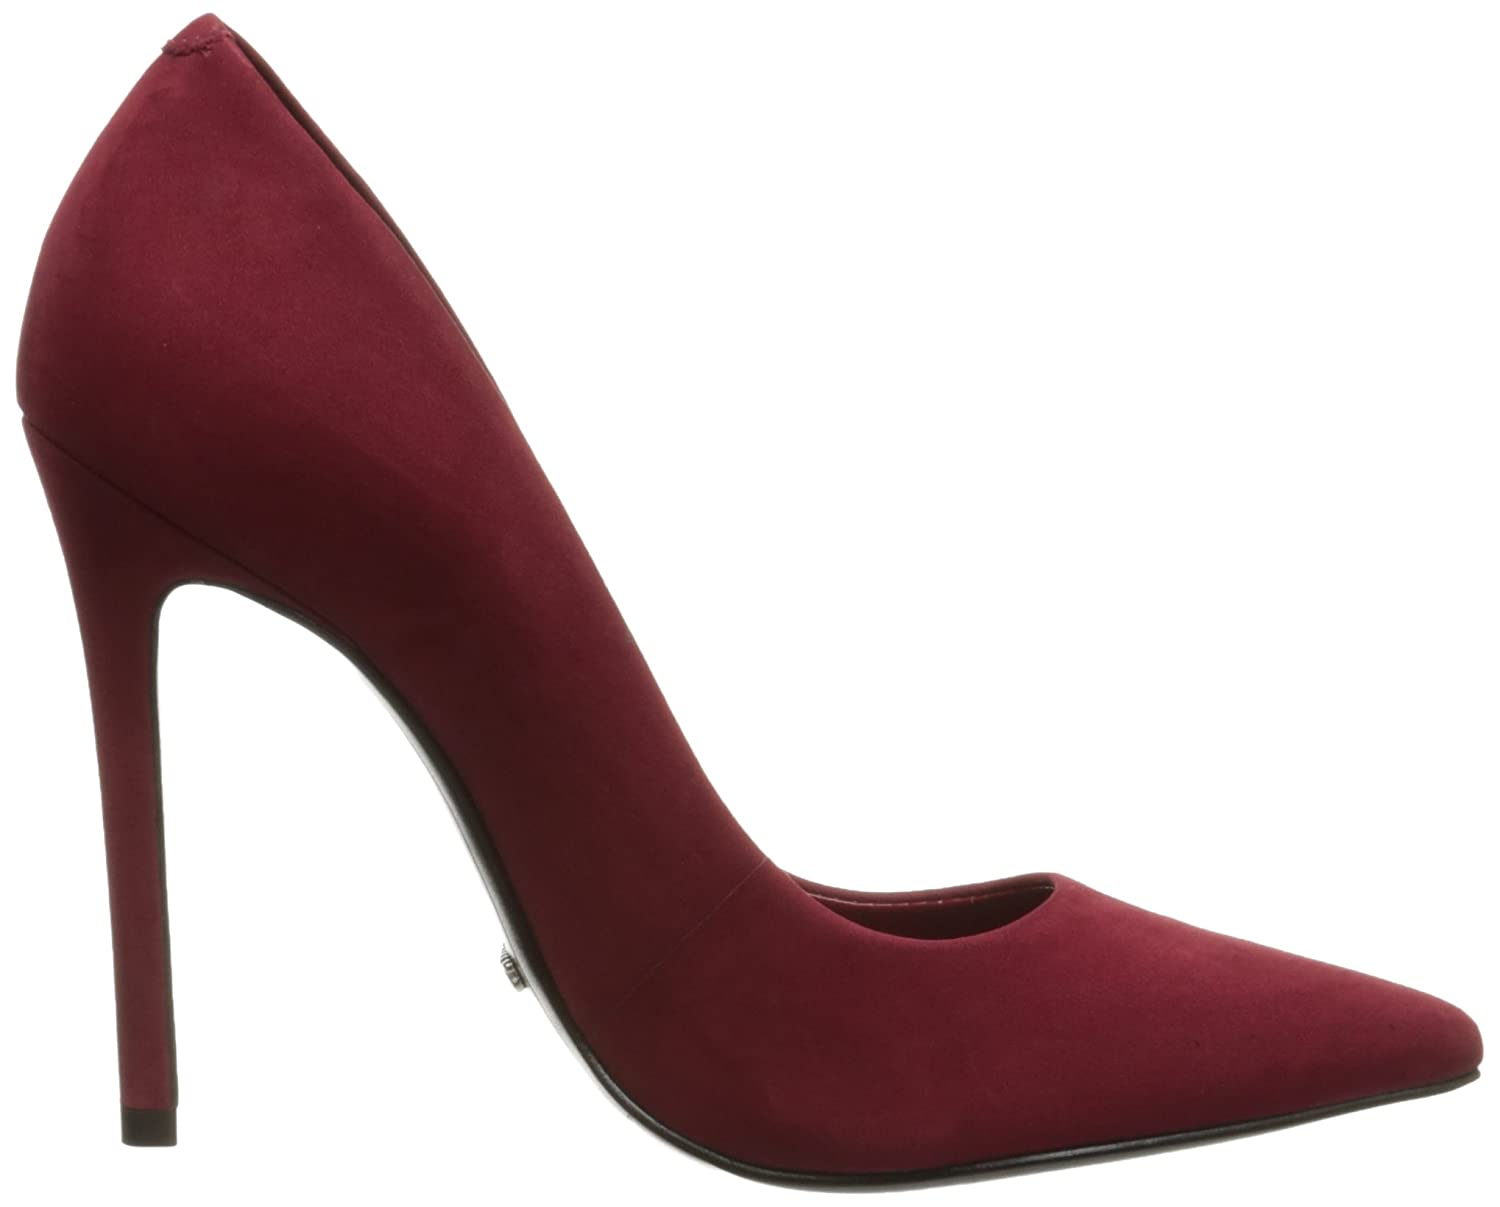 SCHUTZ Women's Gilberta Dress Pump B00O15OGXC 10 B(M) US|Rubi Wine